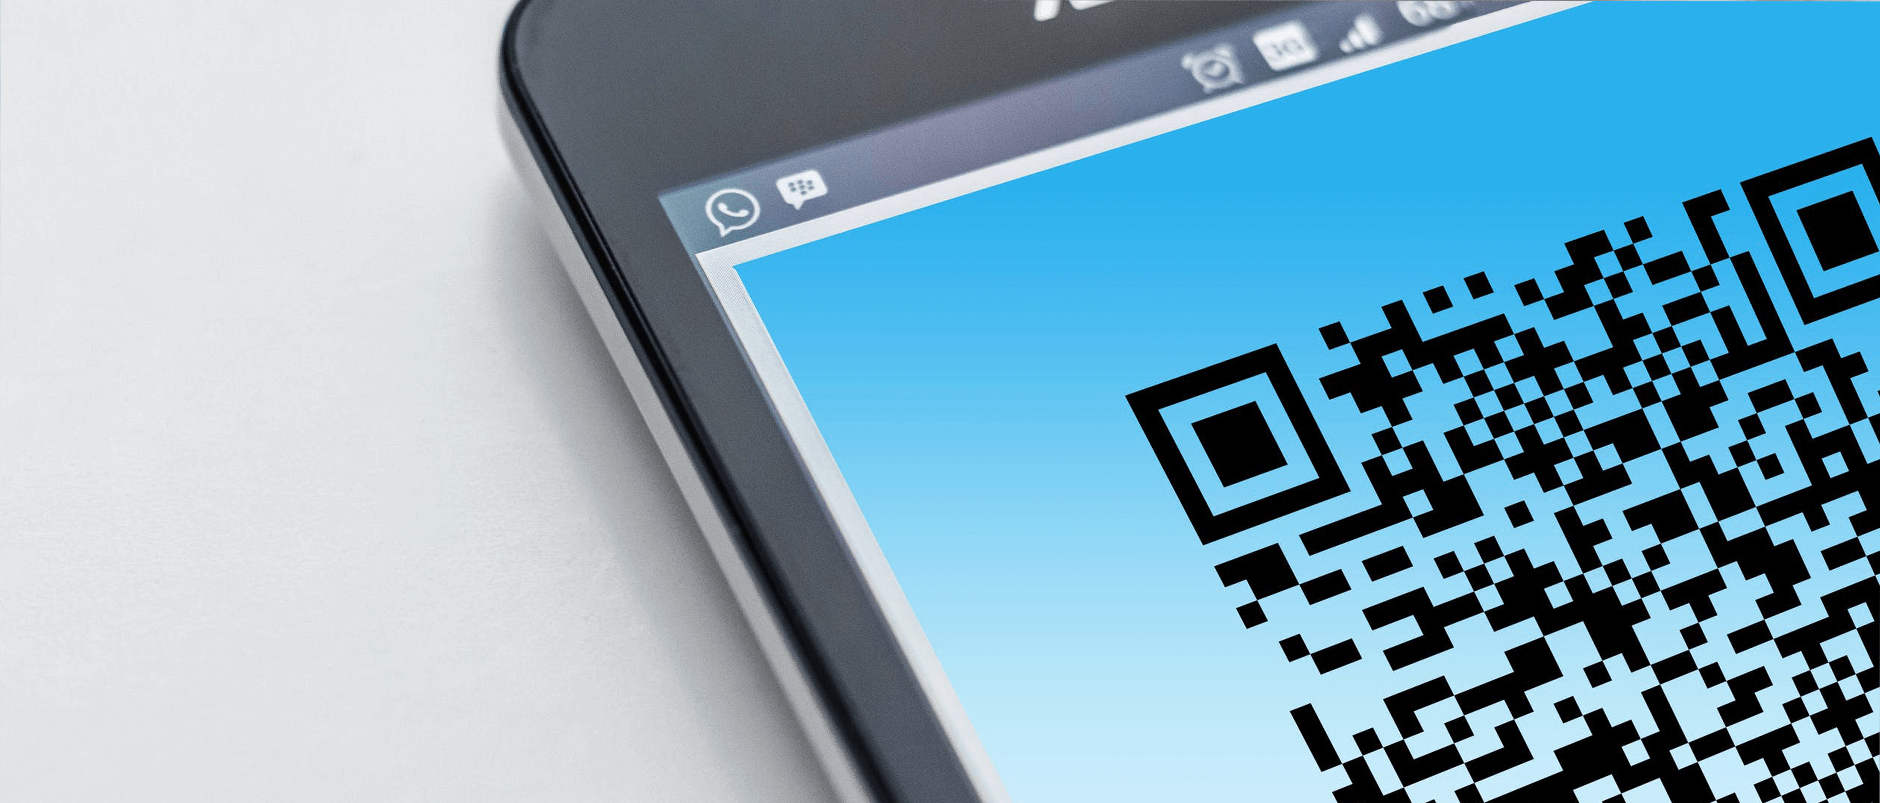 The revival of QR Codes